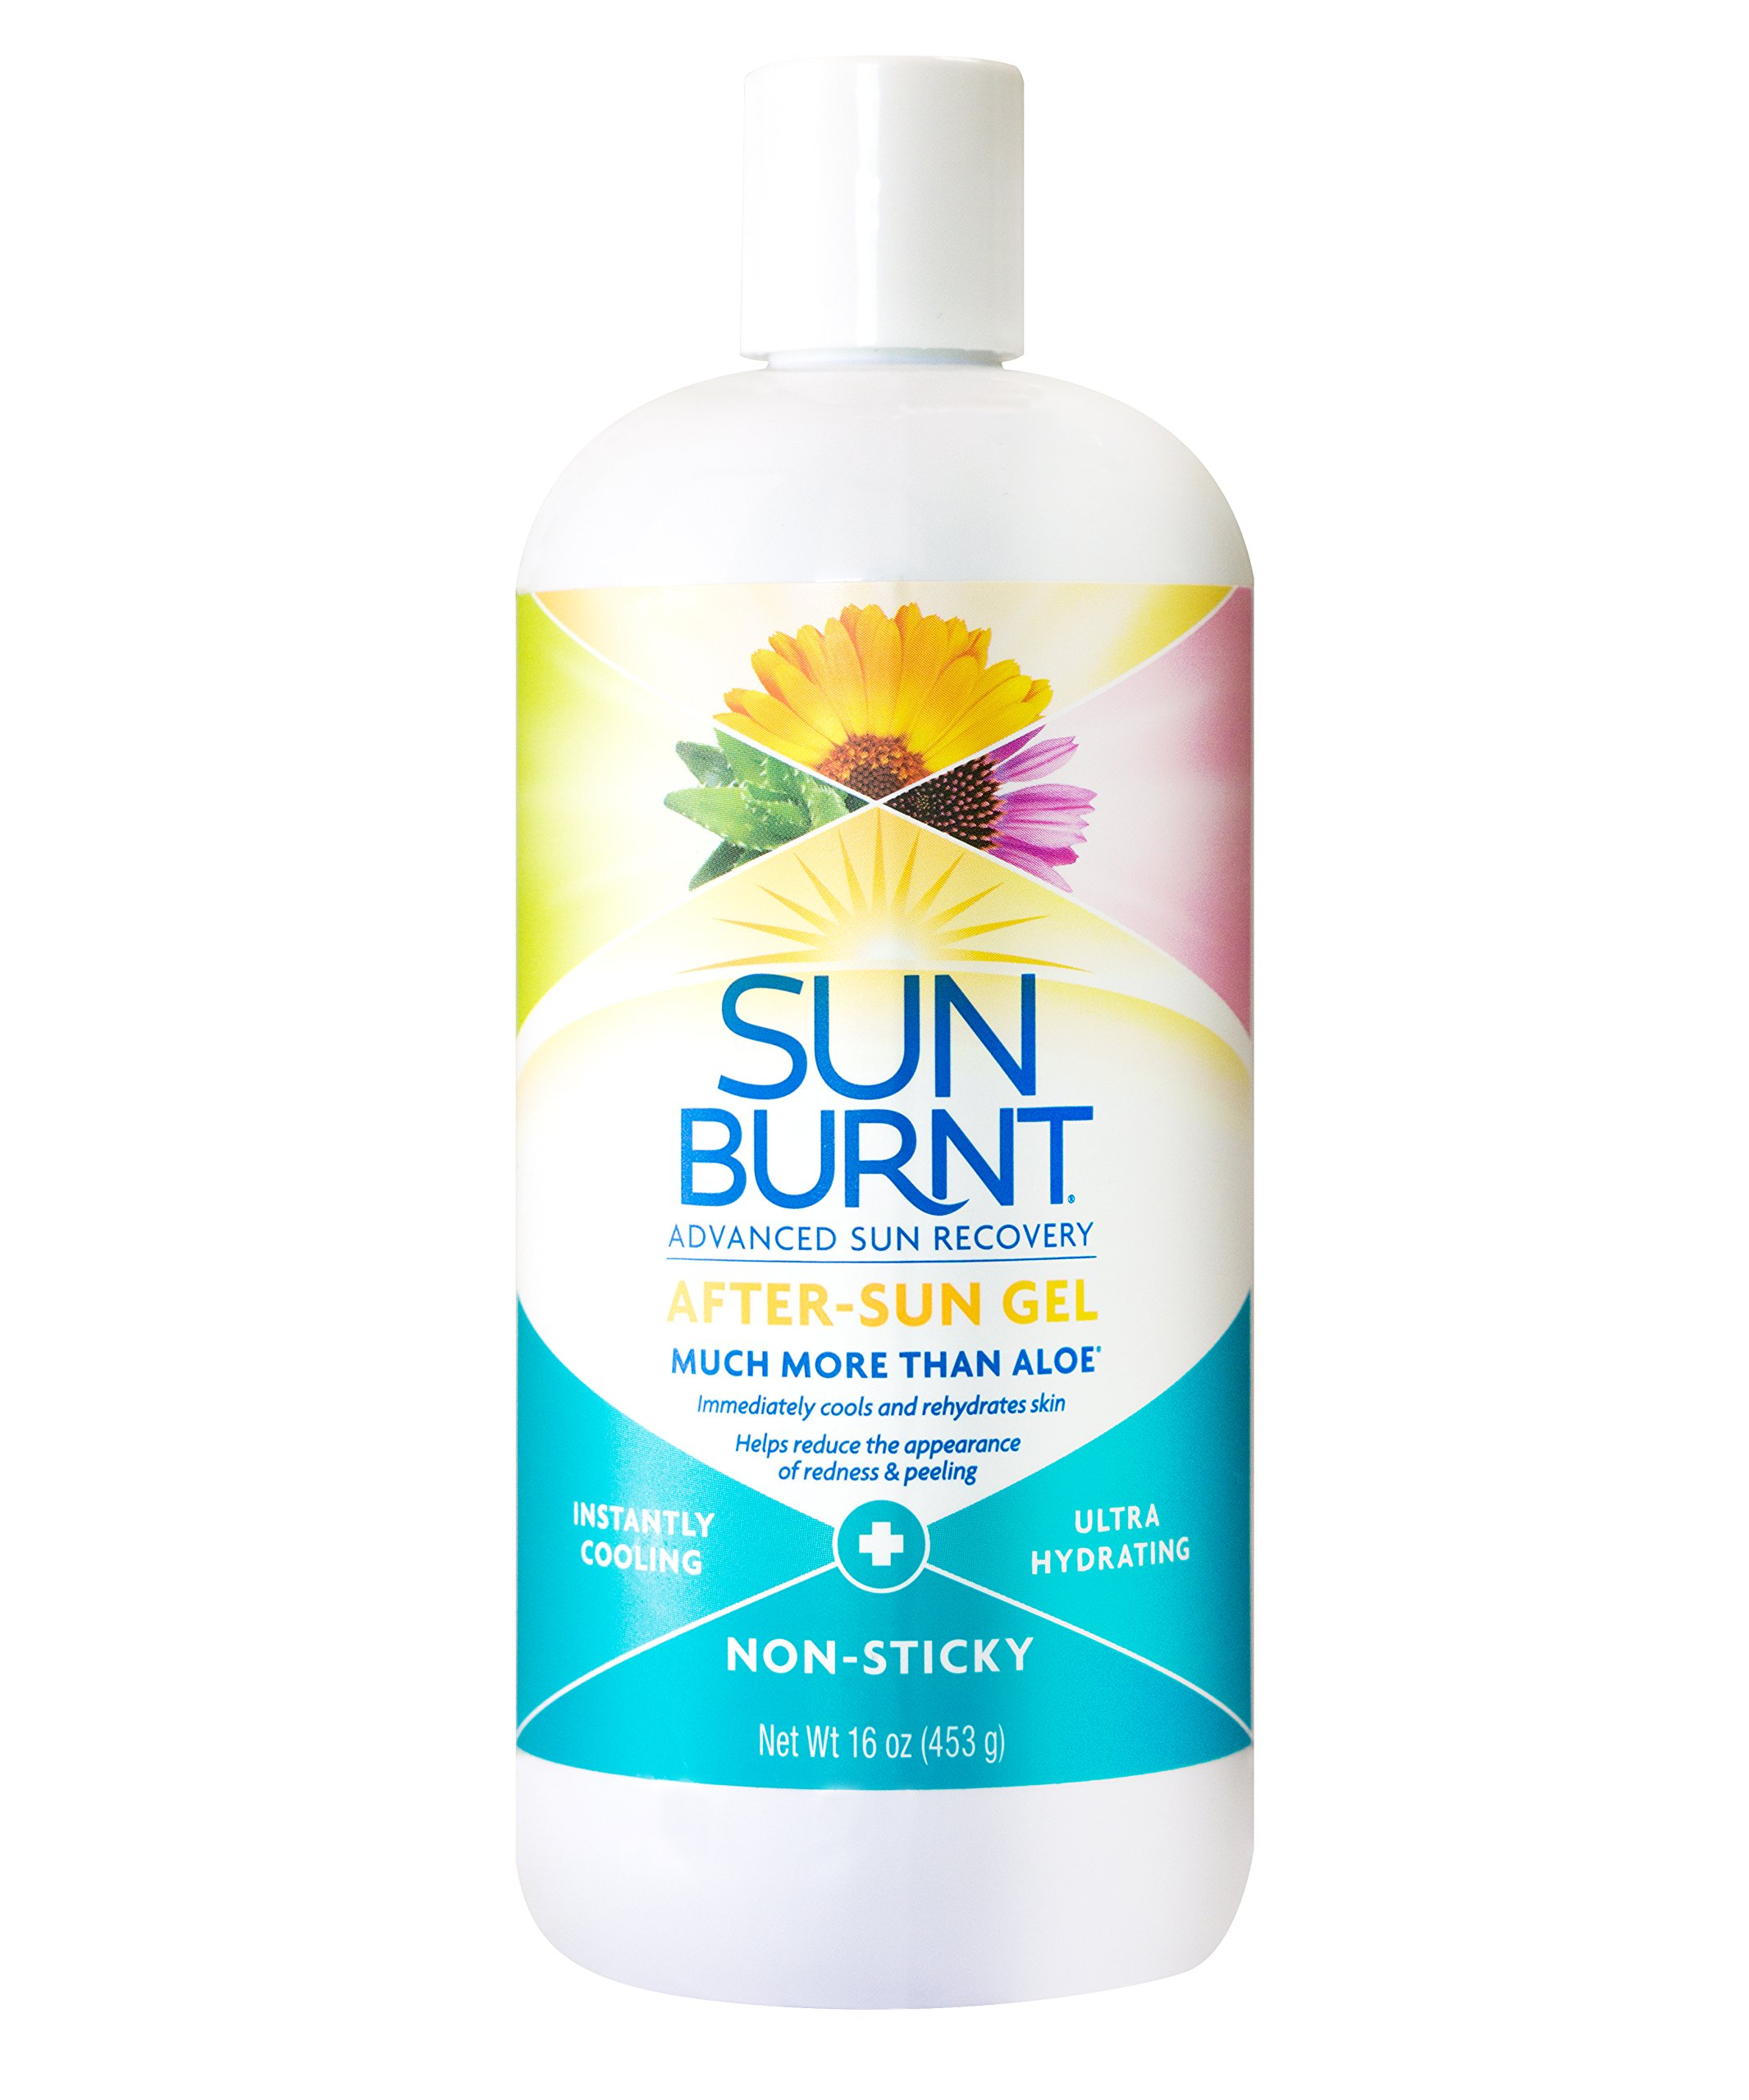 Ultra Hydrating Aloe Vera Gel by SunBurnt, with Natural Organic Aloe Vera + Calendula, Echinacea & Hyaluronic Acid to Help Soothe, Hydrate, Cool Dry Skin, Provide Soothing Sunburn Relief, 16 Ounce by Sunburnt